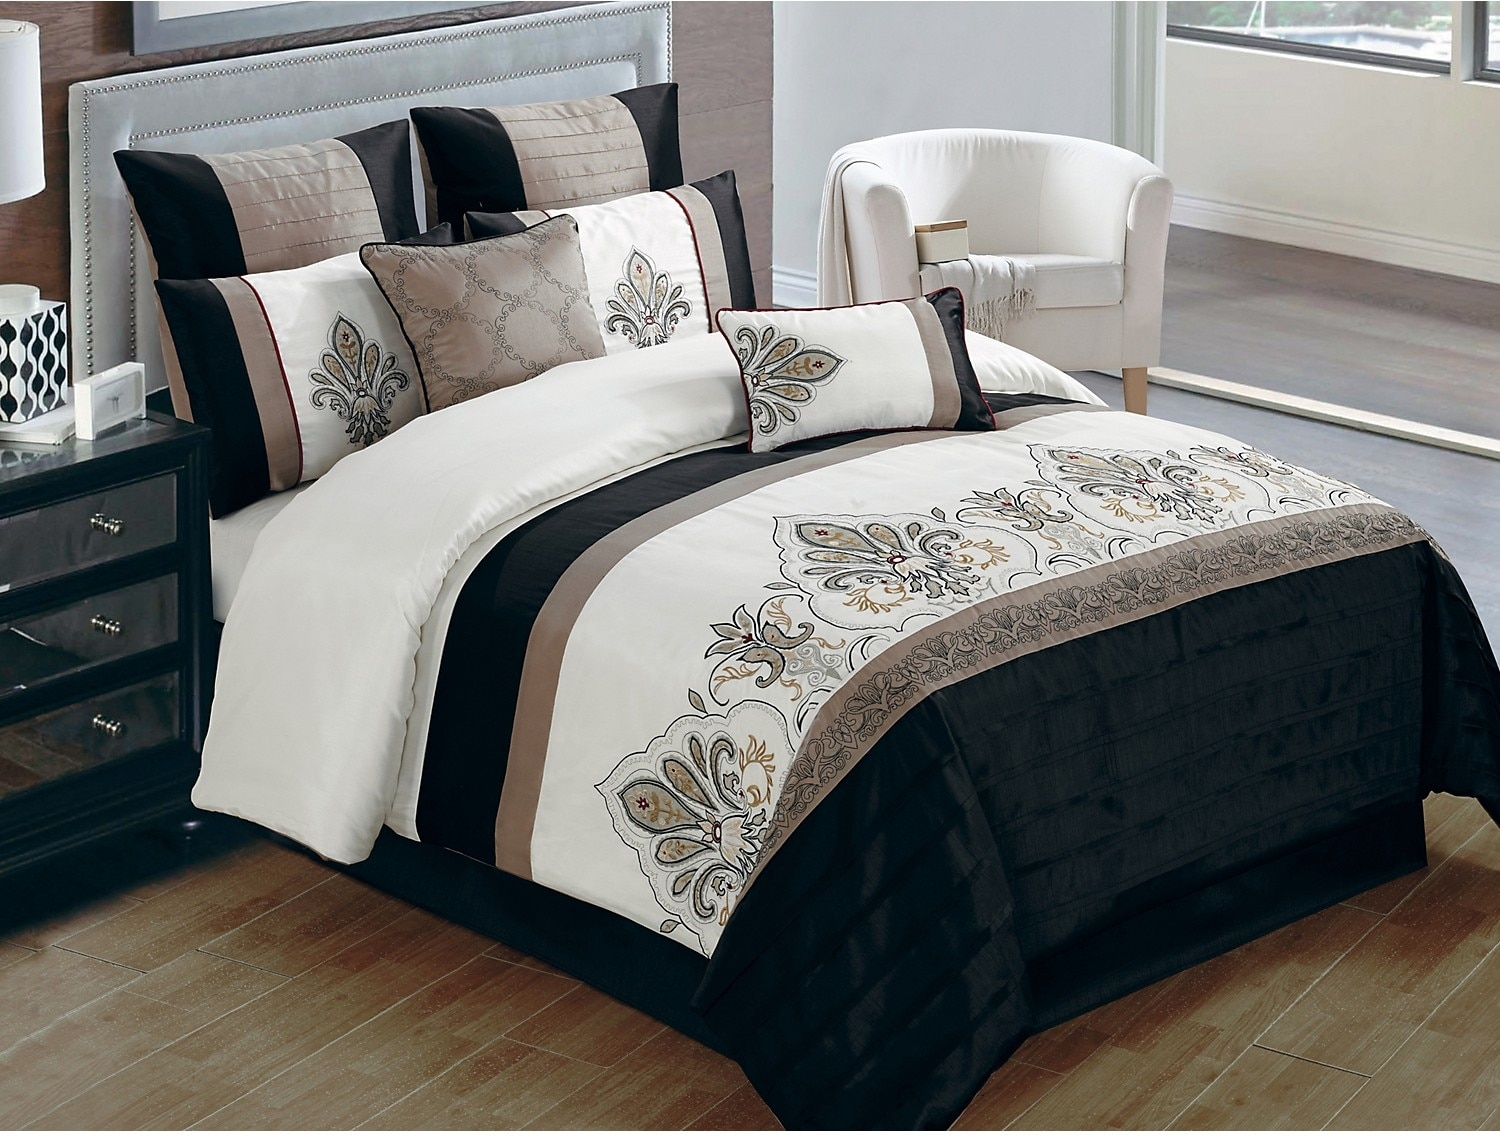 Mattresses and Bedding - Jacobson 8-Piece Queen Comforter Set